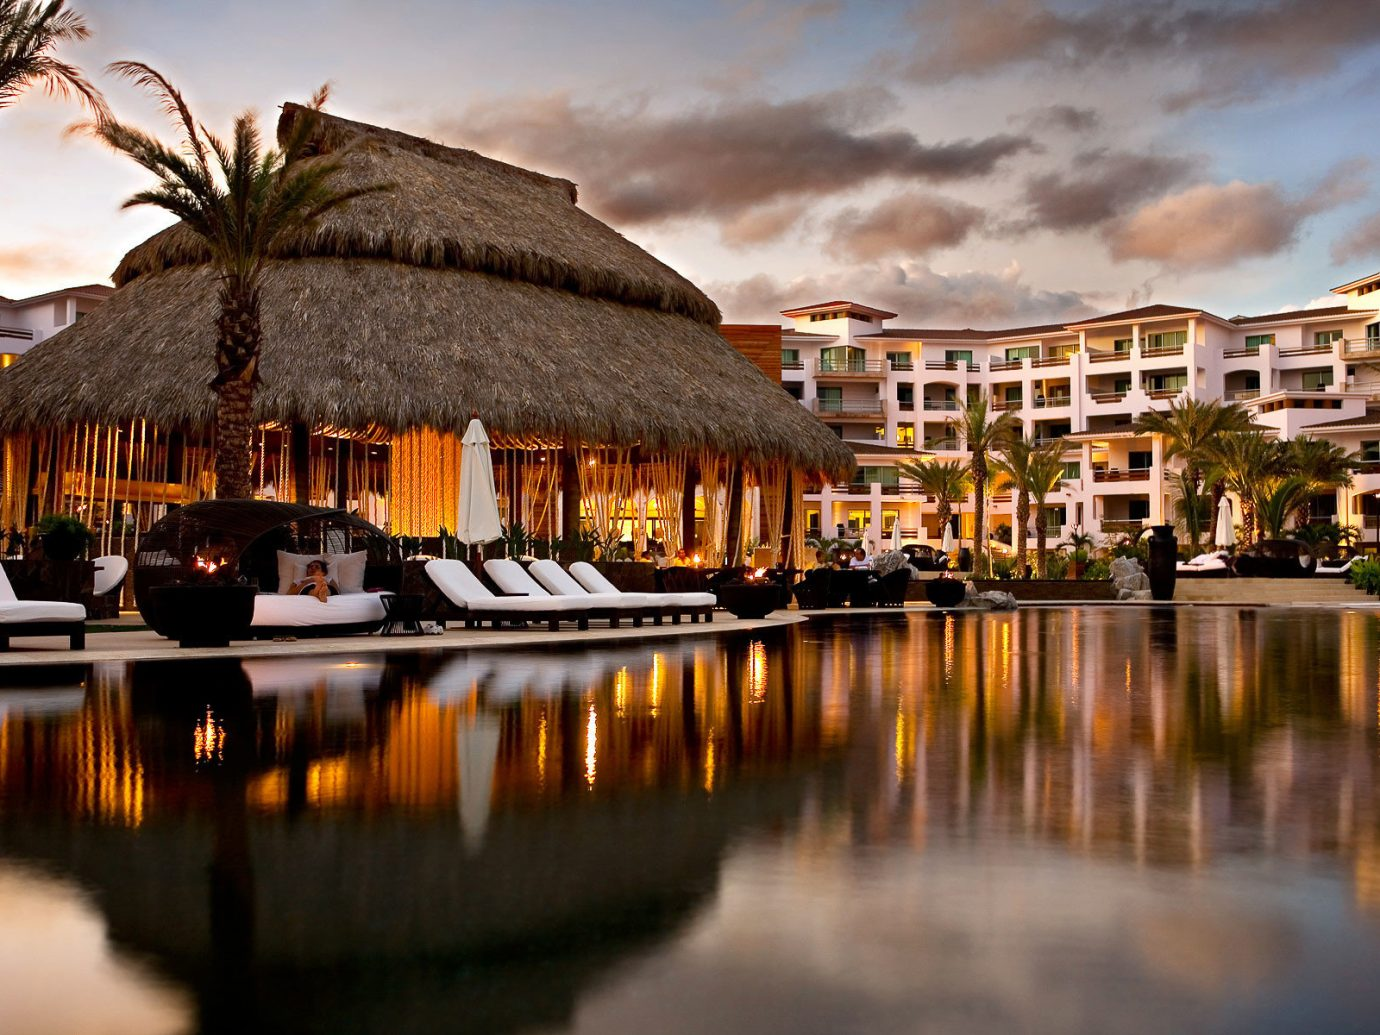 Budget Hotels Luxury Nightlife Scenic views Tropical Waterfront outdoor water sky reflection Town evening night vacation cityscape waterway dusk lined traveling several surrounded